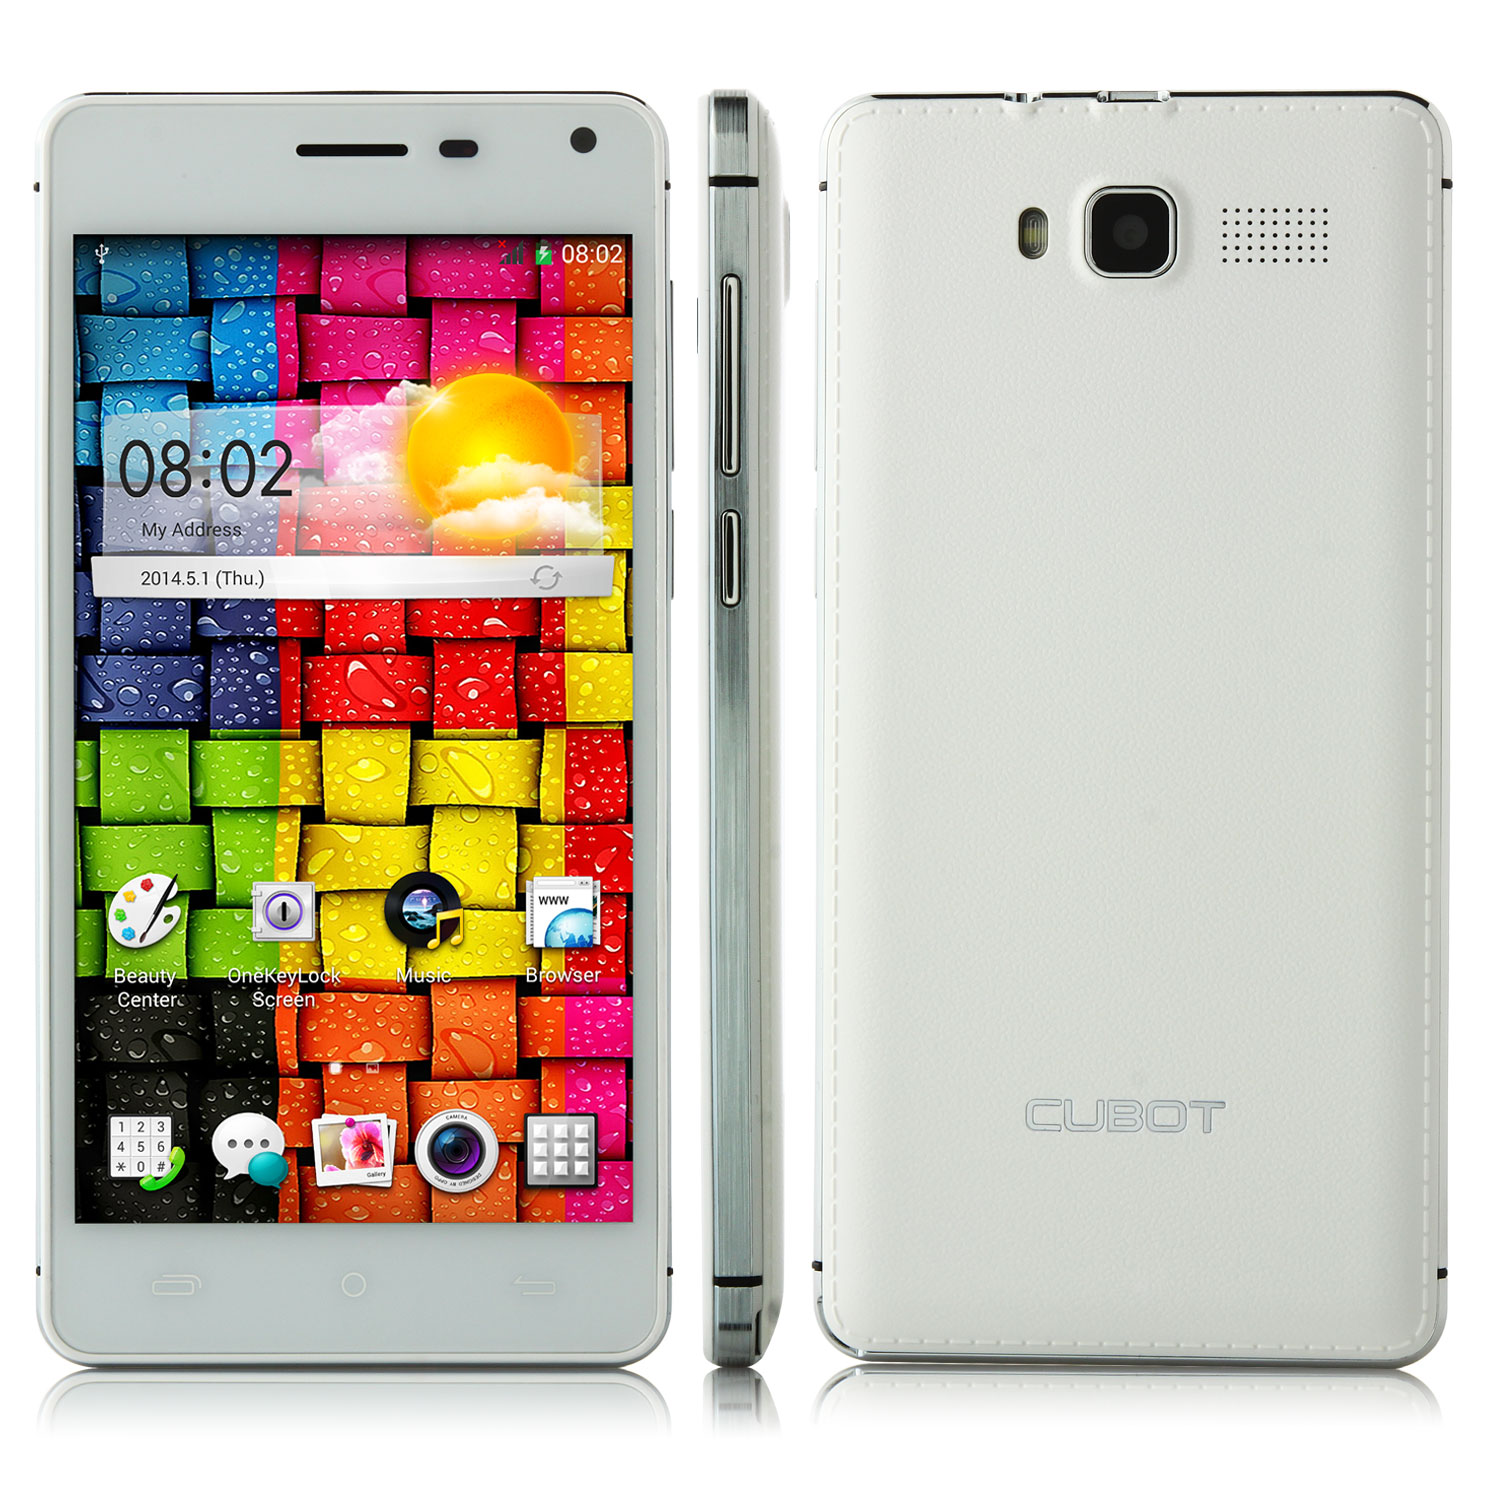 CUBOT S200 Smartphone MTK6582 5.0 Inch HD Screen 3300mAh Battery 13.0MP Camera OTG